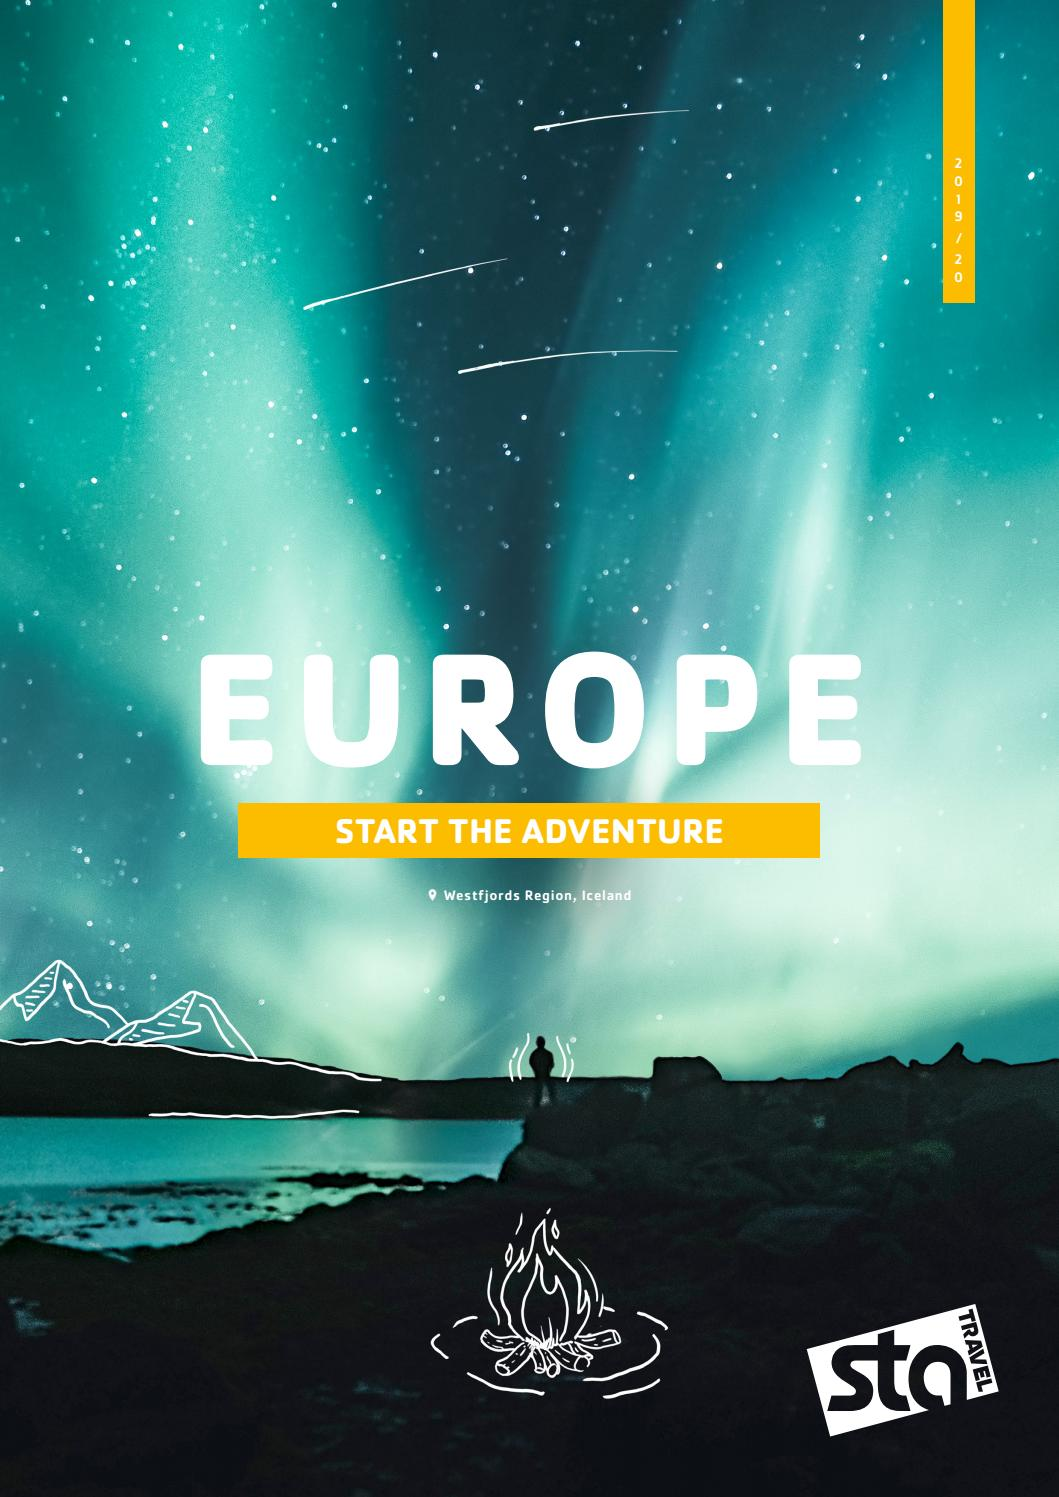 29077a1be2f5 Europe 2019-20 AUD (Singapore) by STA Travel Ltd - issuu